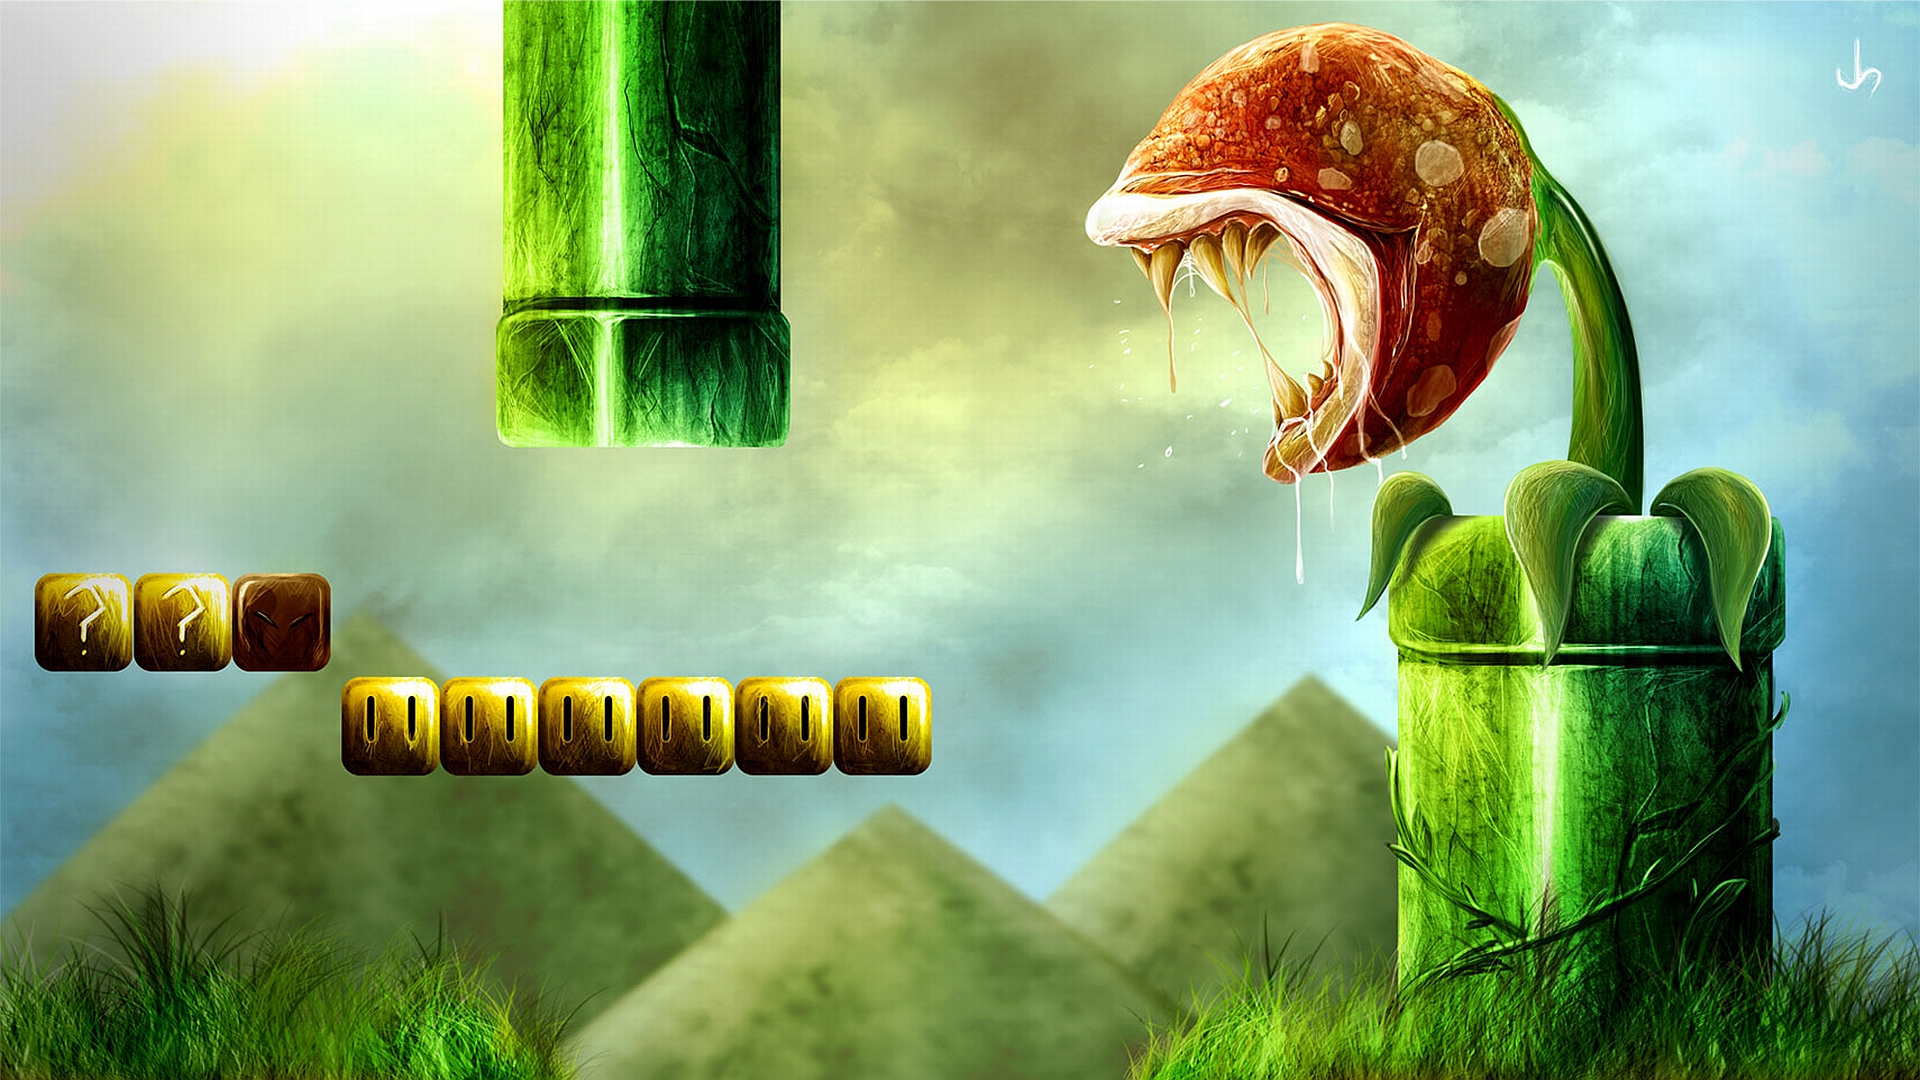 Mario Video game HD Wallpapers(High Quality) - All HD Wallpapers